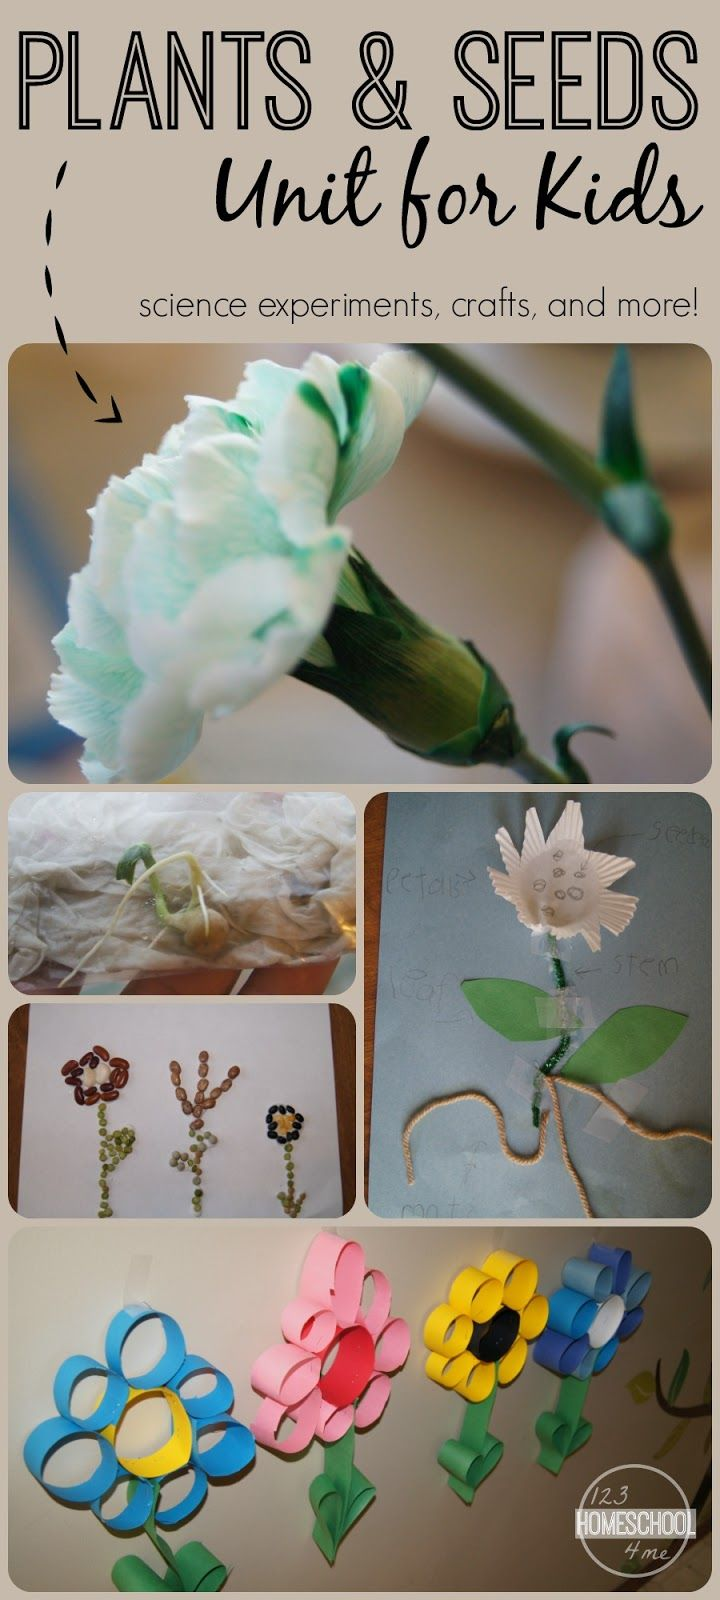 plants and seeds unit for kids with science experiments, crafts for kids, and more